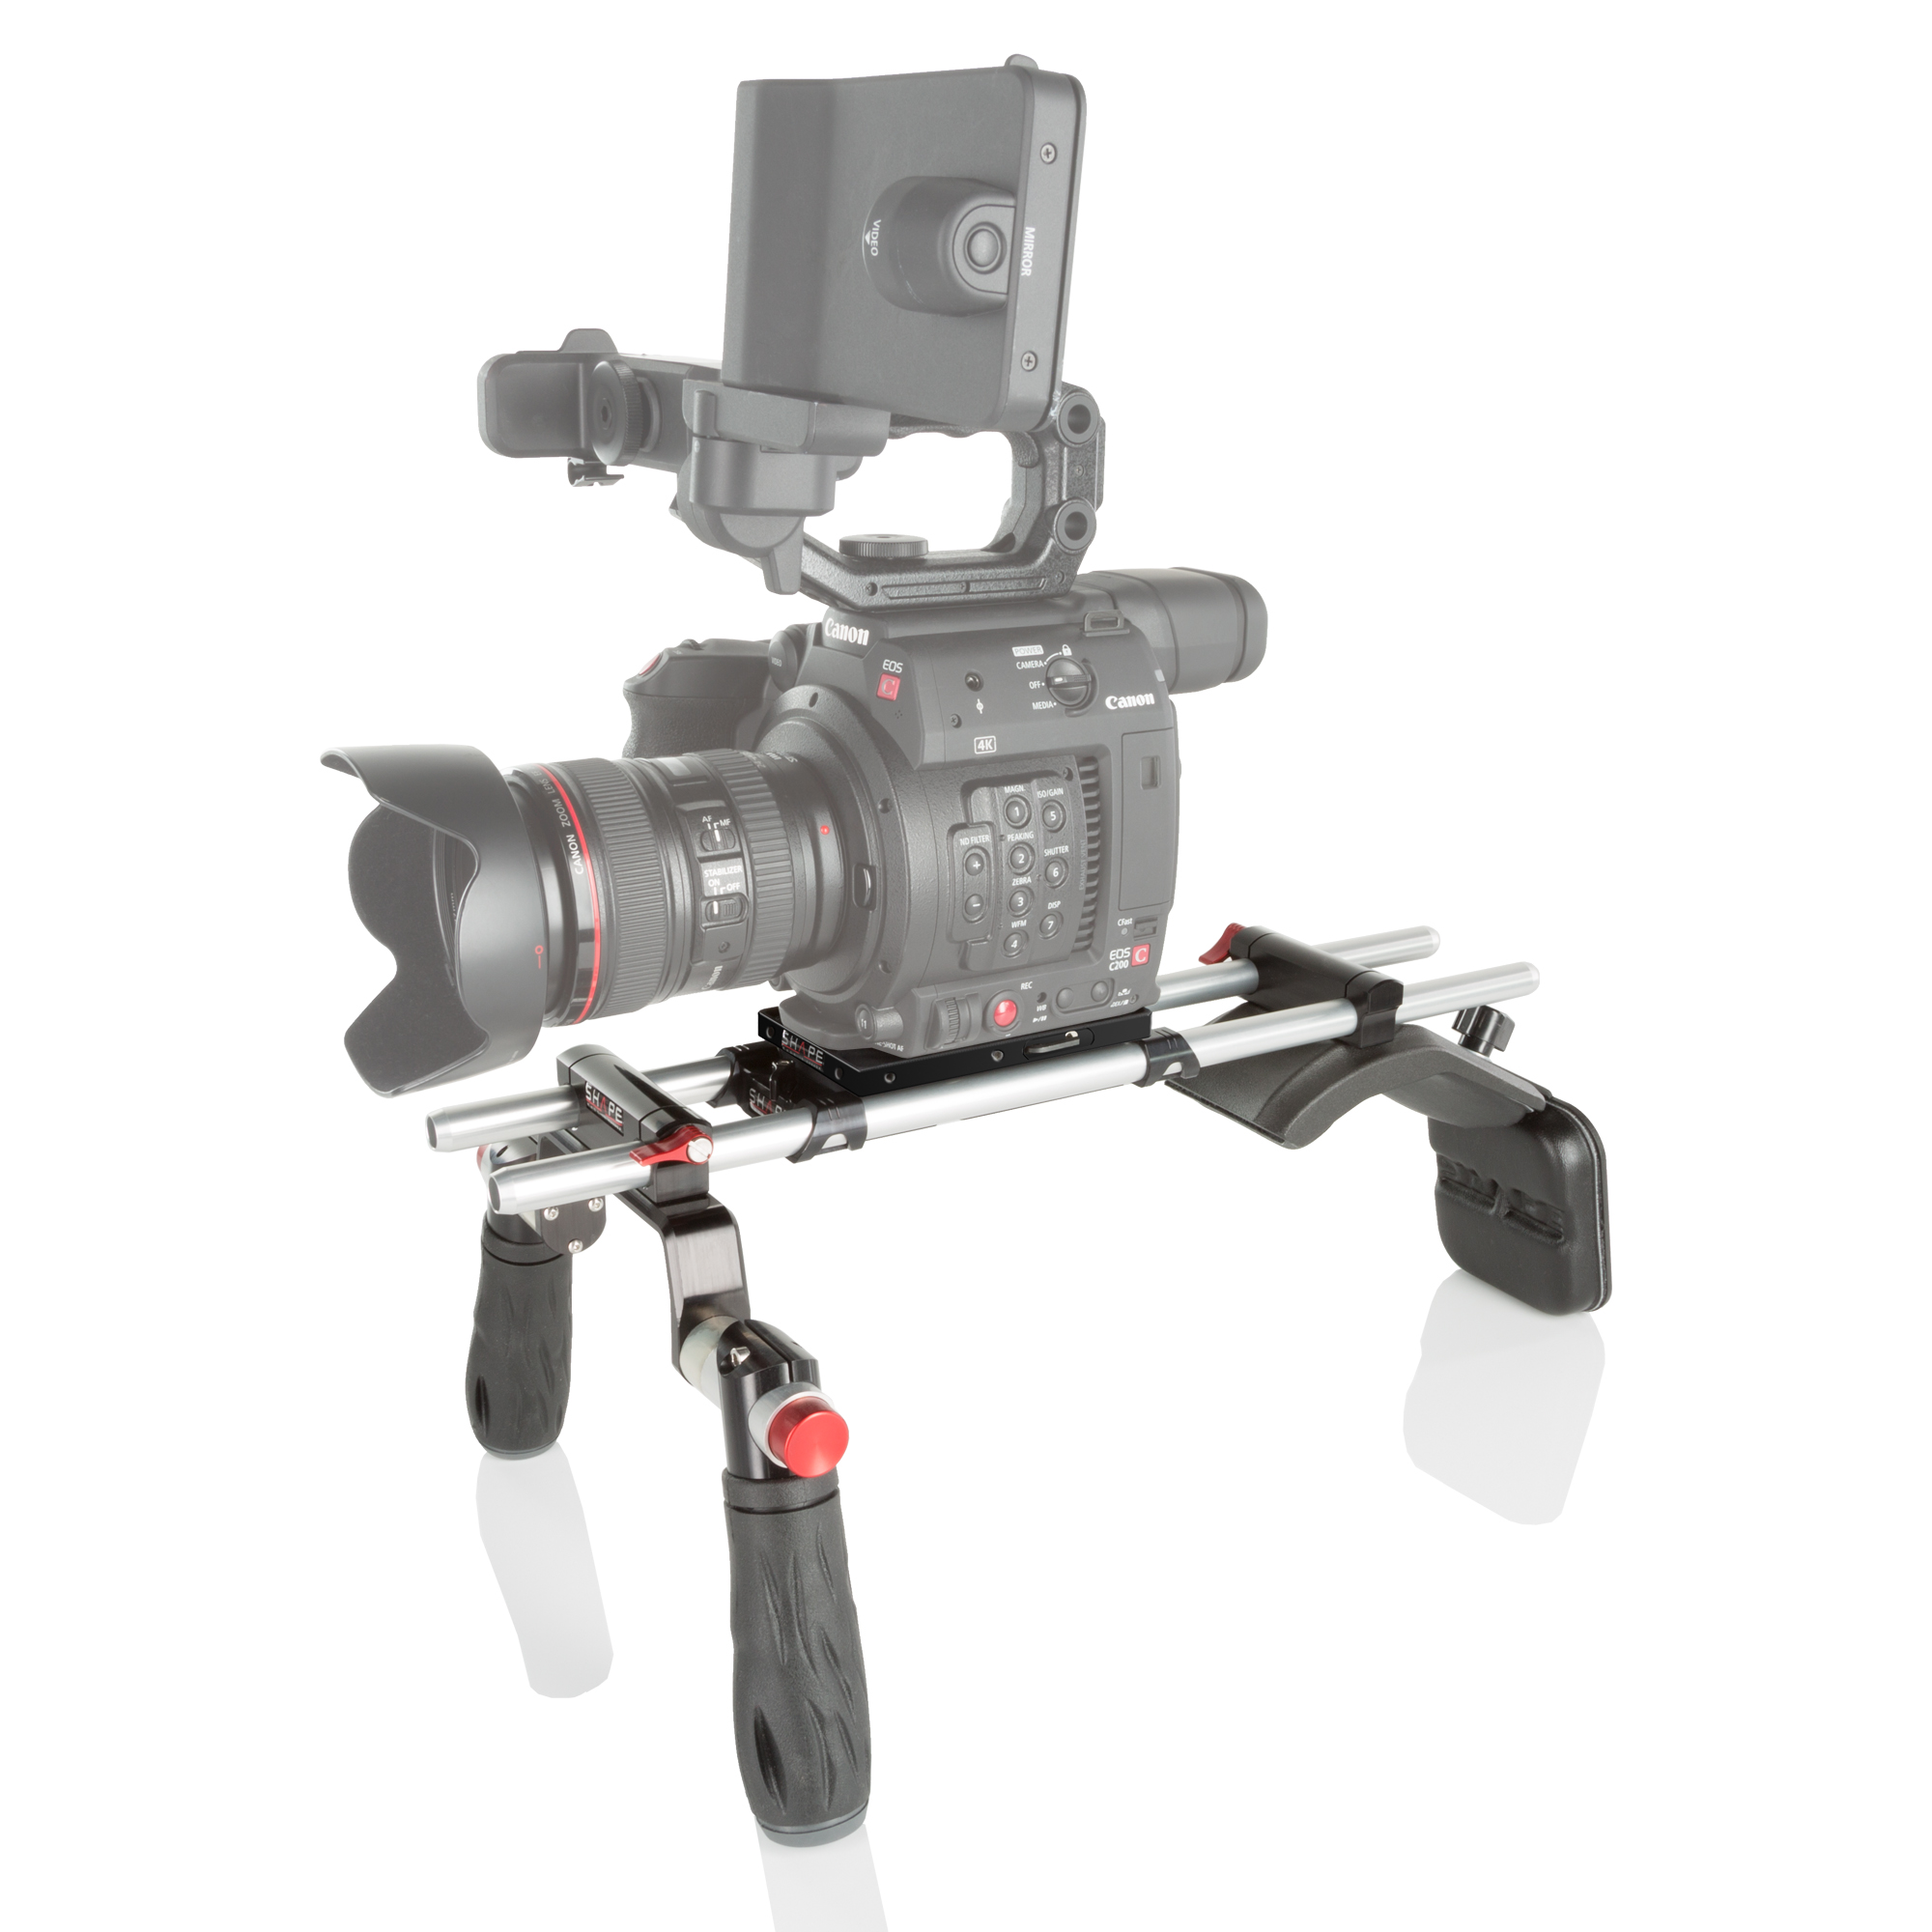 SHAPE NEW CANON C200 camera accessories